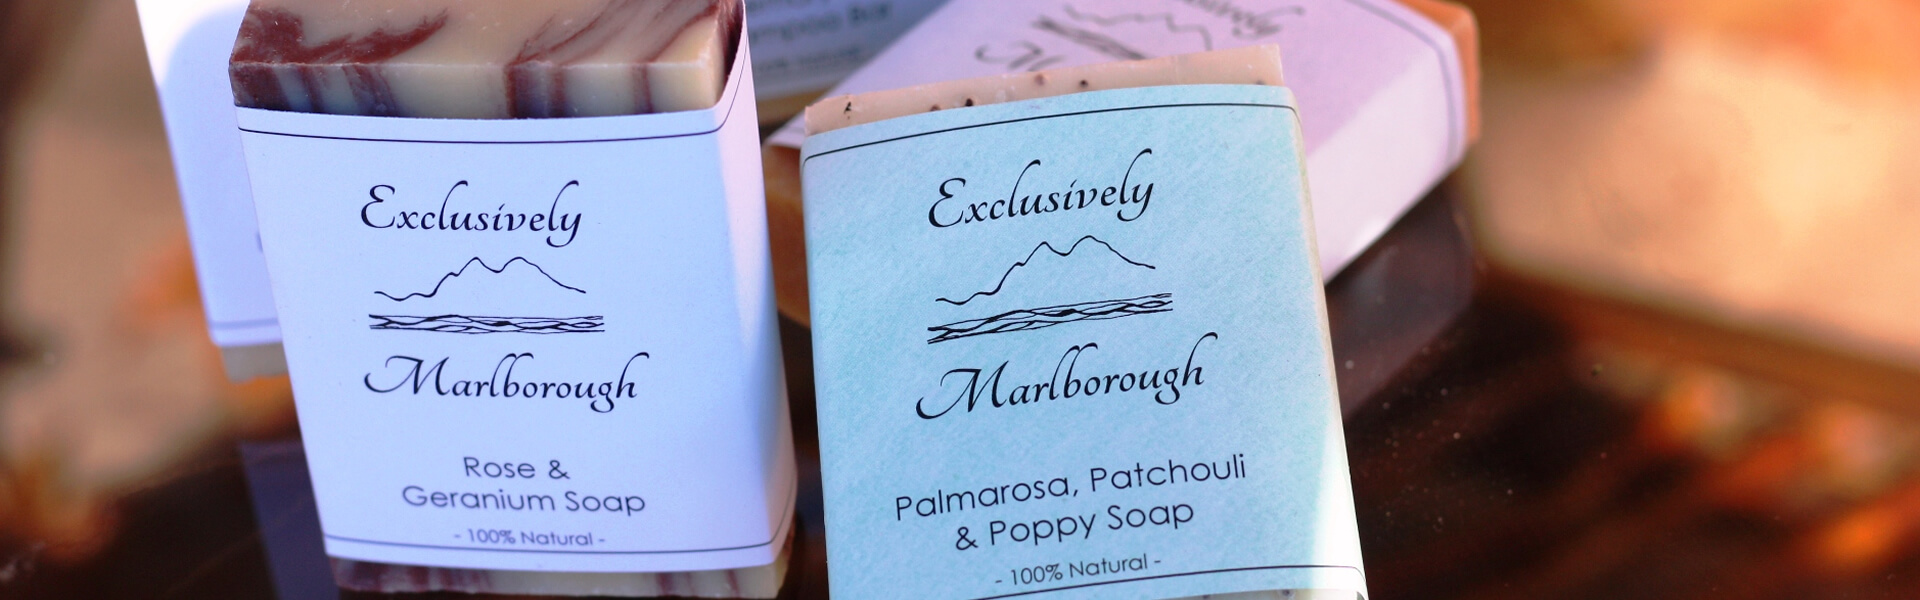 Natural Wholesale Soap And Bar Options From Jeymar Soap And Body In Blenheim Marlborough NZ